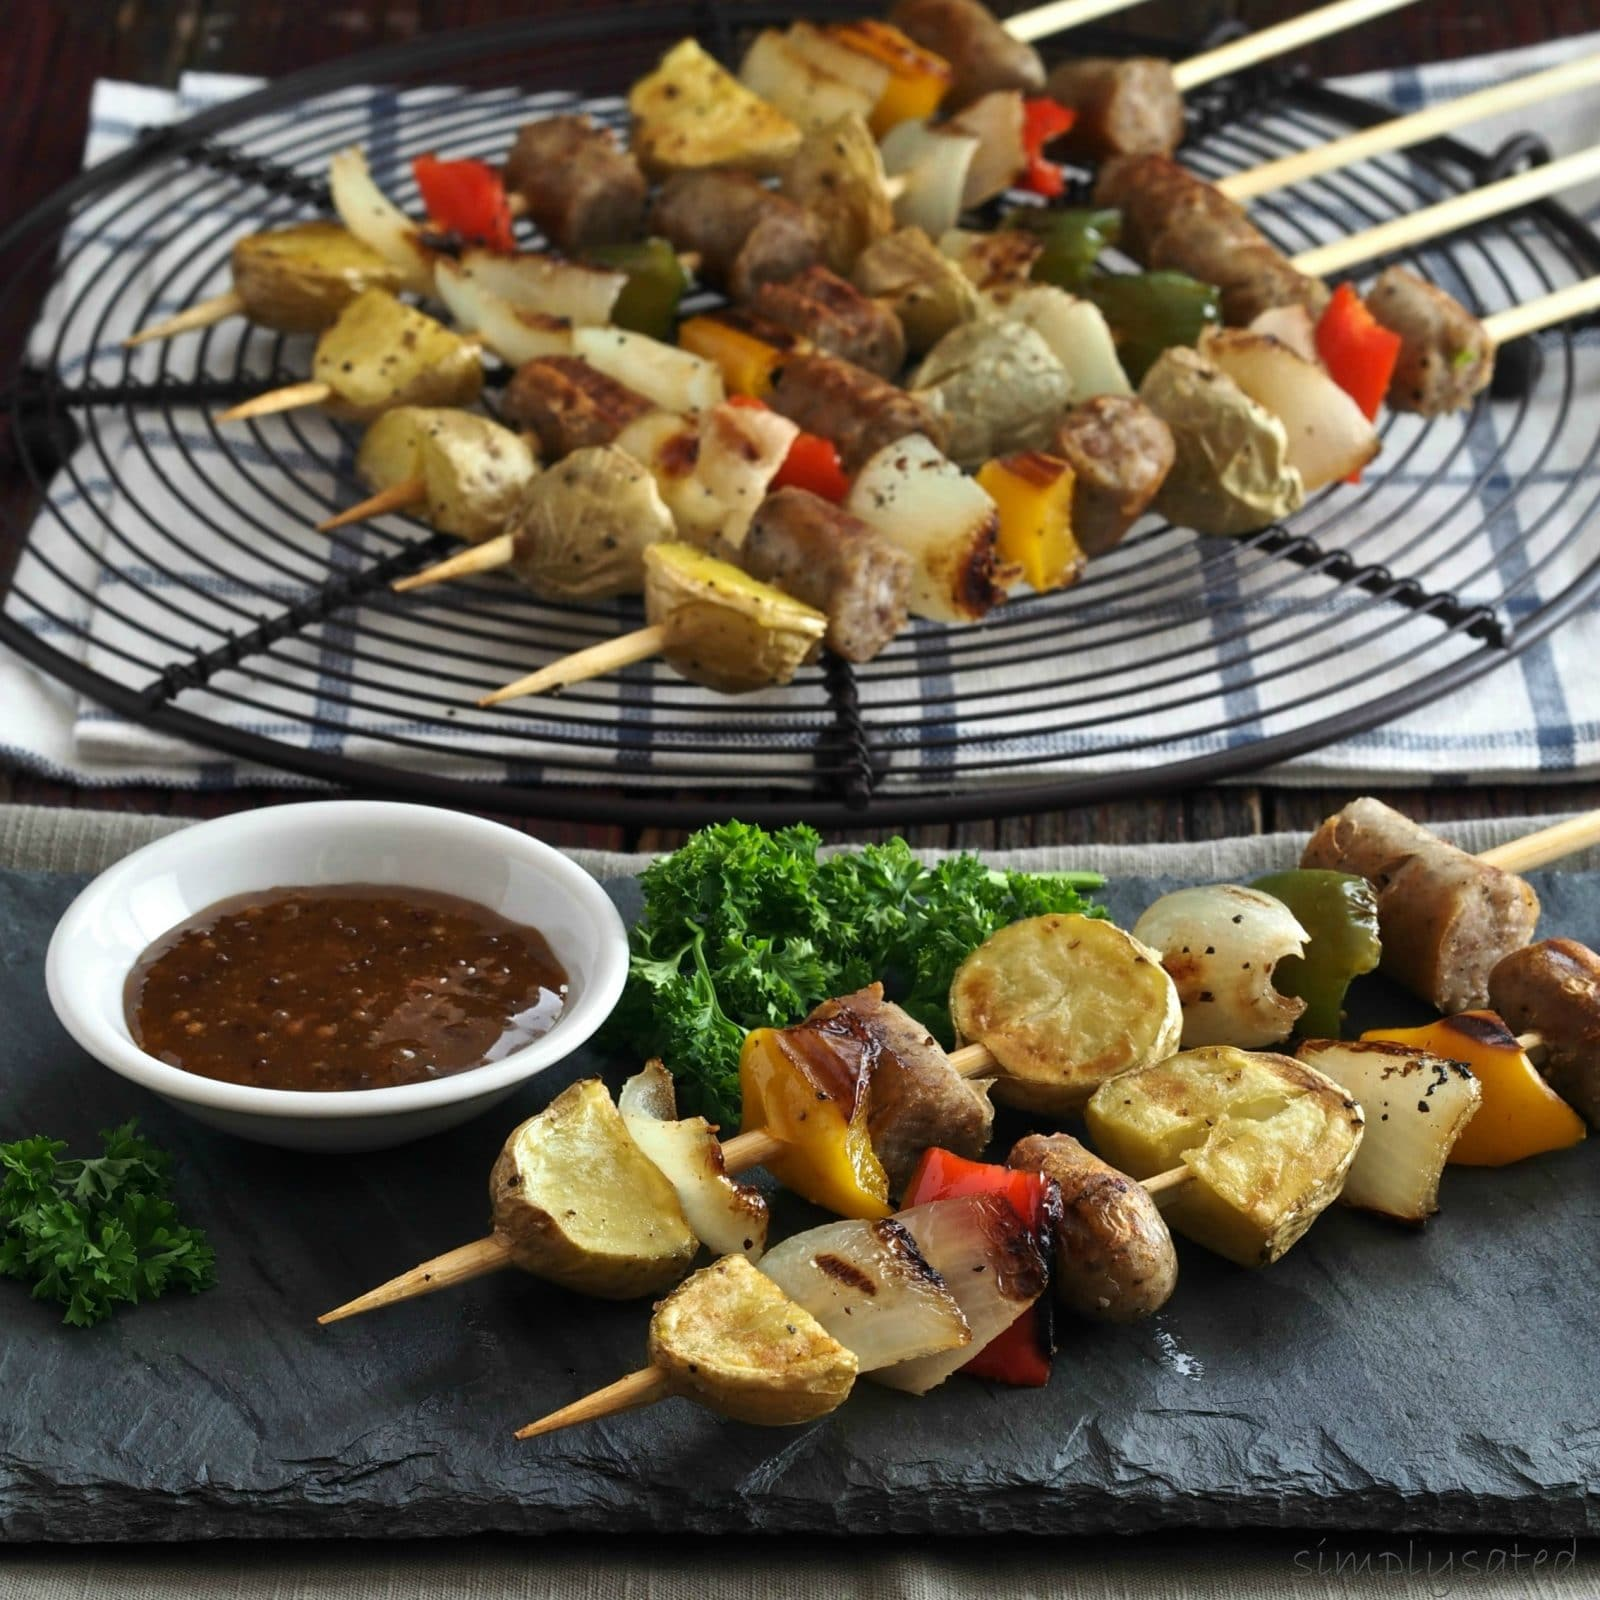 Savory Breakfast Kebabs - Jones Dairy Farm Little Pork Sausages, roasted sweet peppers, onions & peppers threaded on bamboo skewers. Breakfast-on-a-stick. Simply Sated